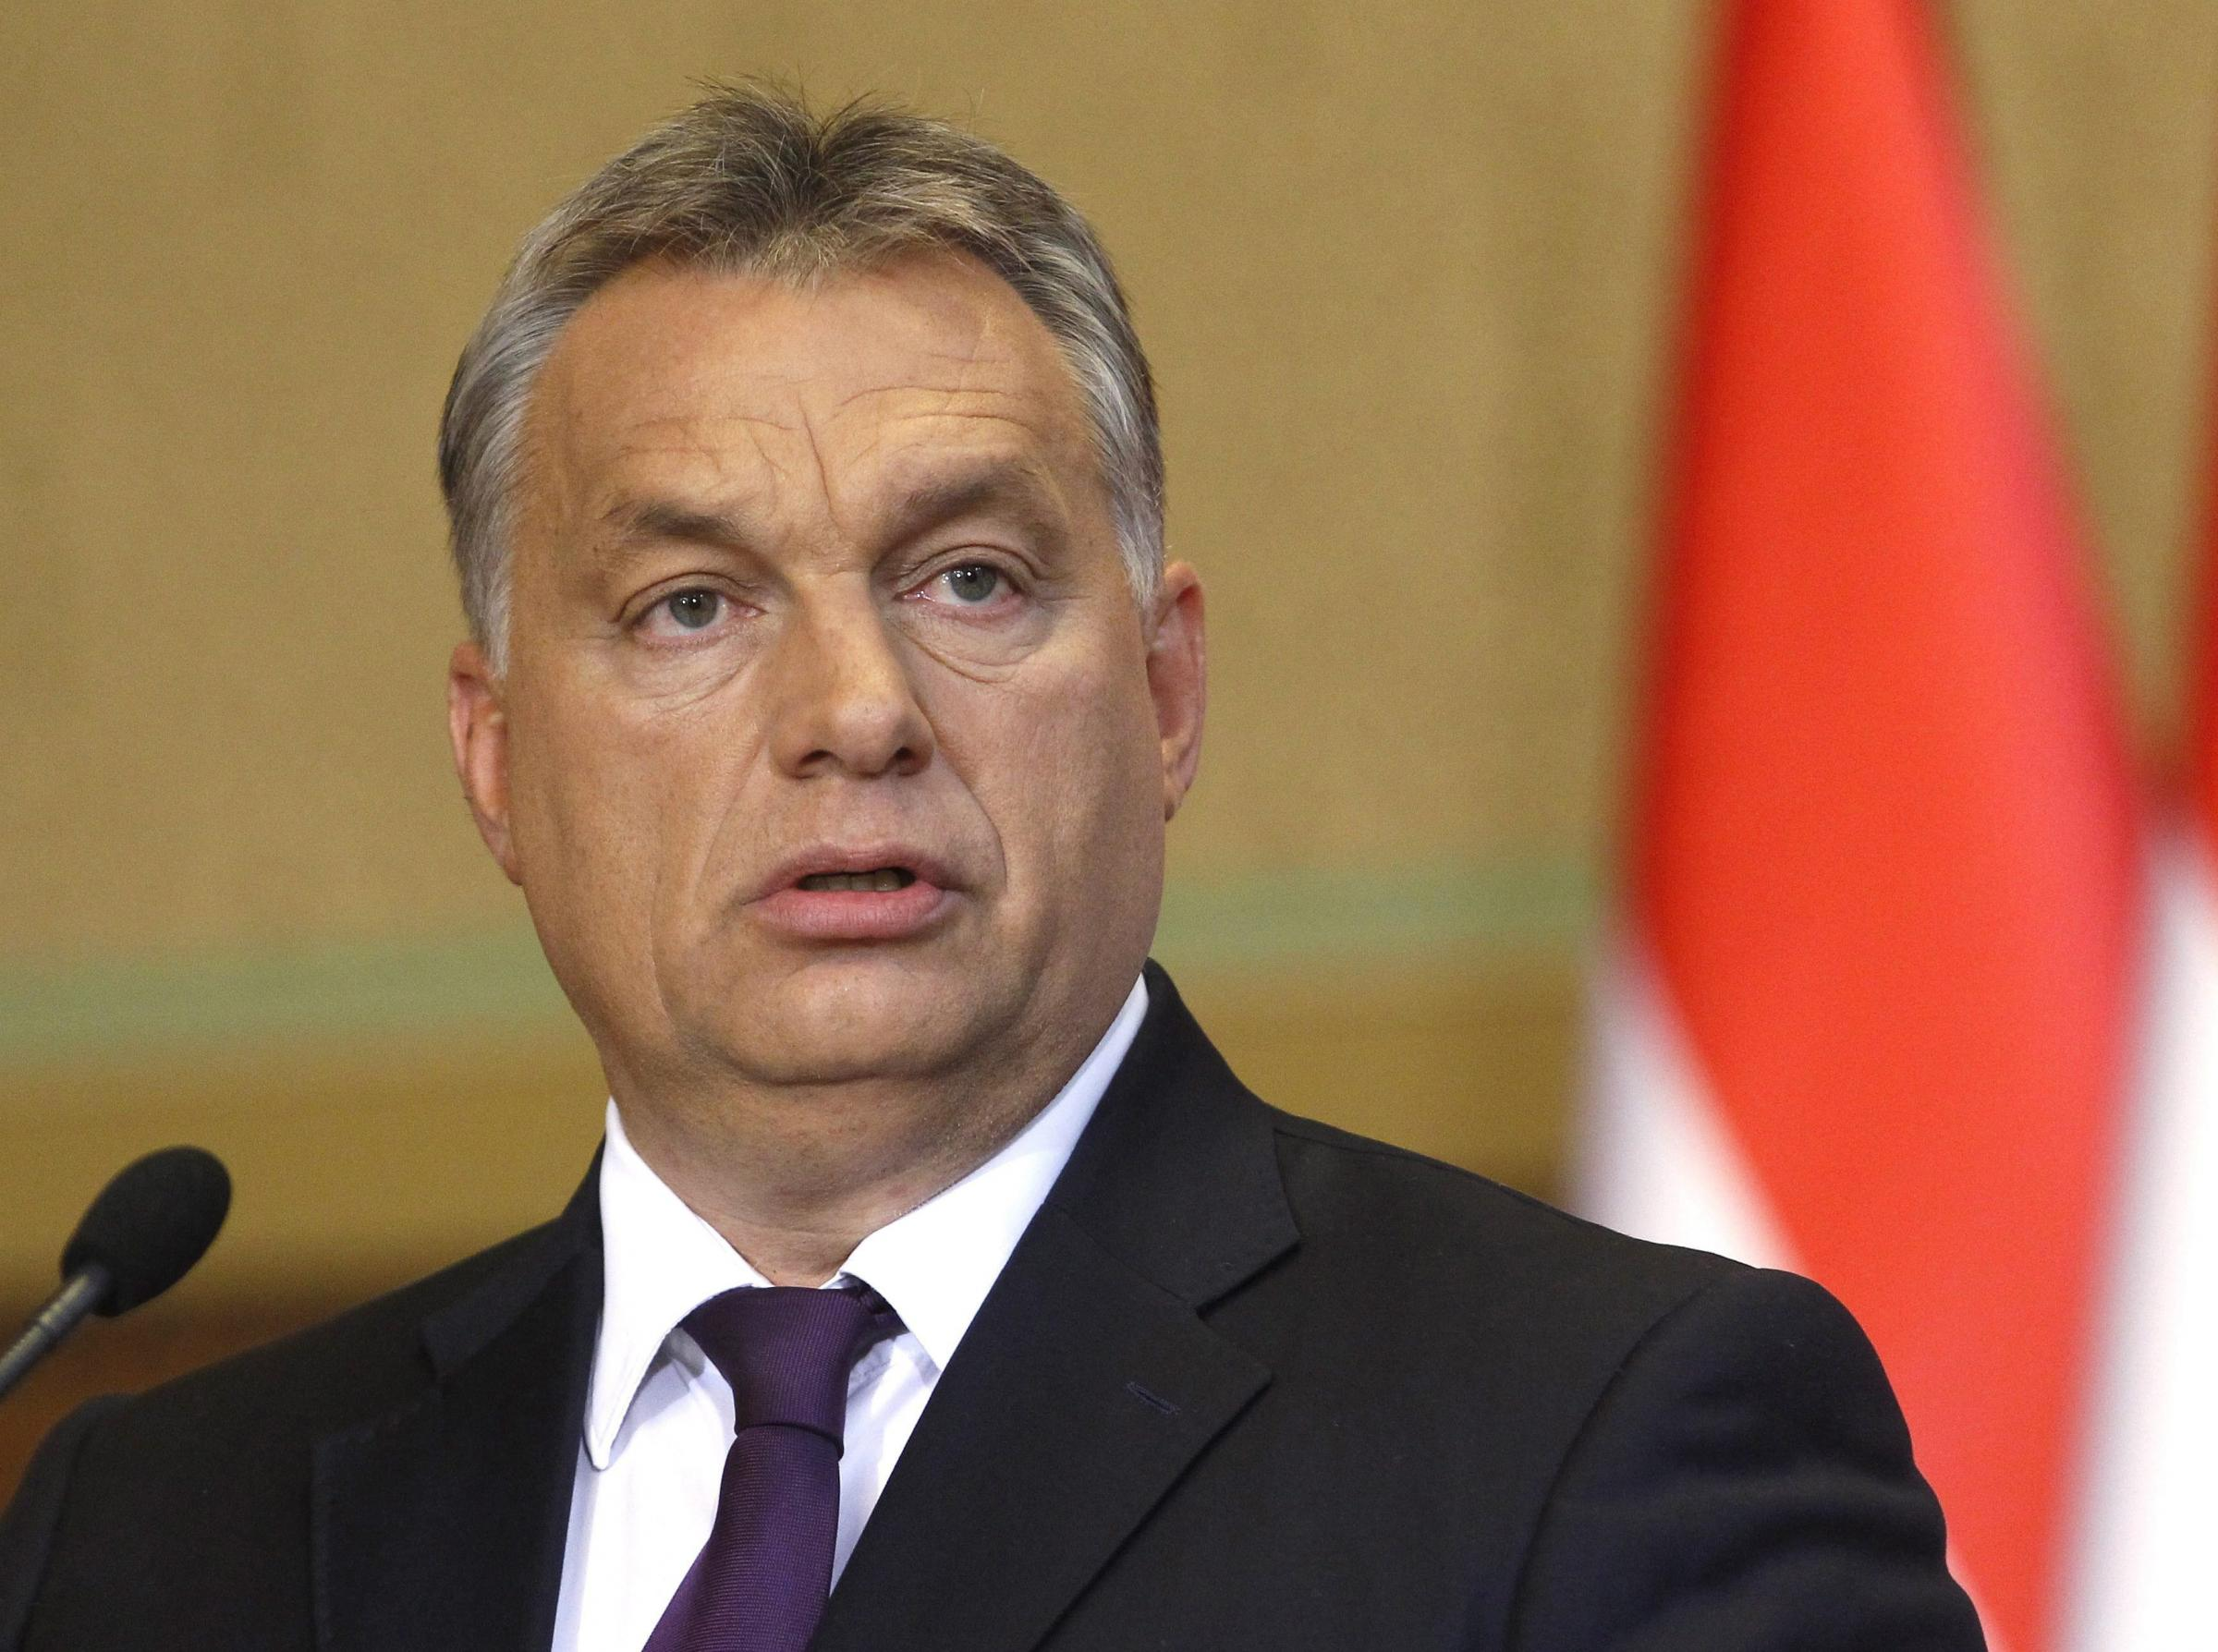 Tory MEPs voted to support Hungarian prime minister Viktor Orban